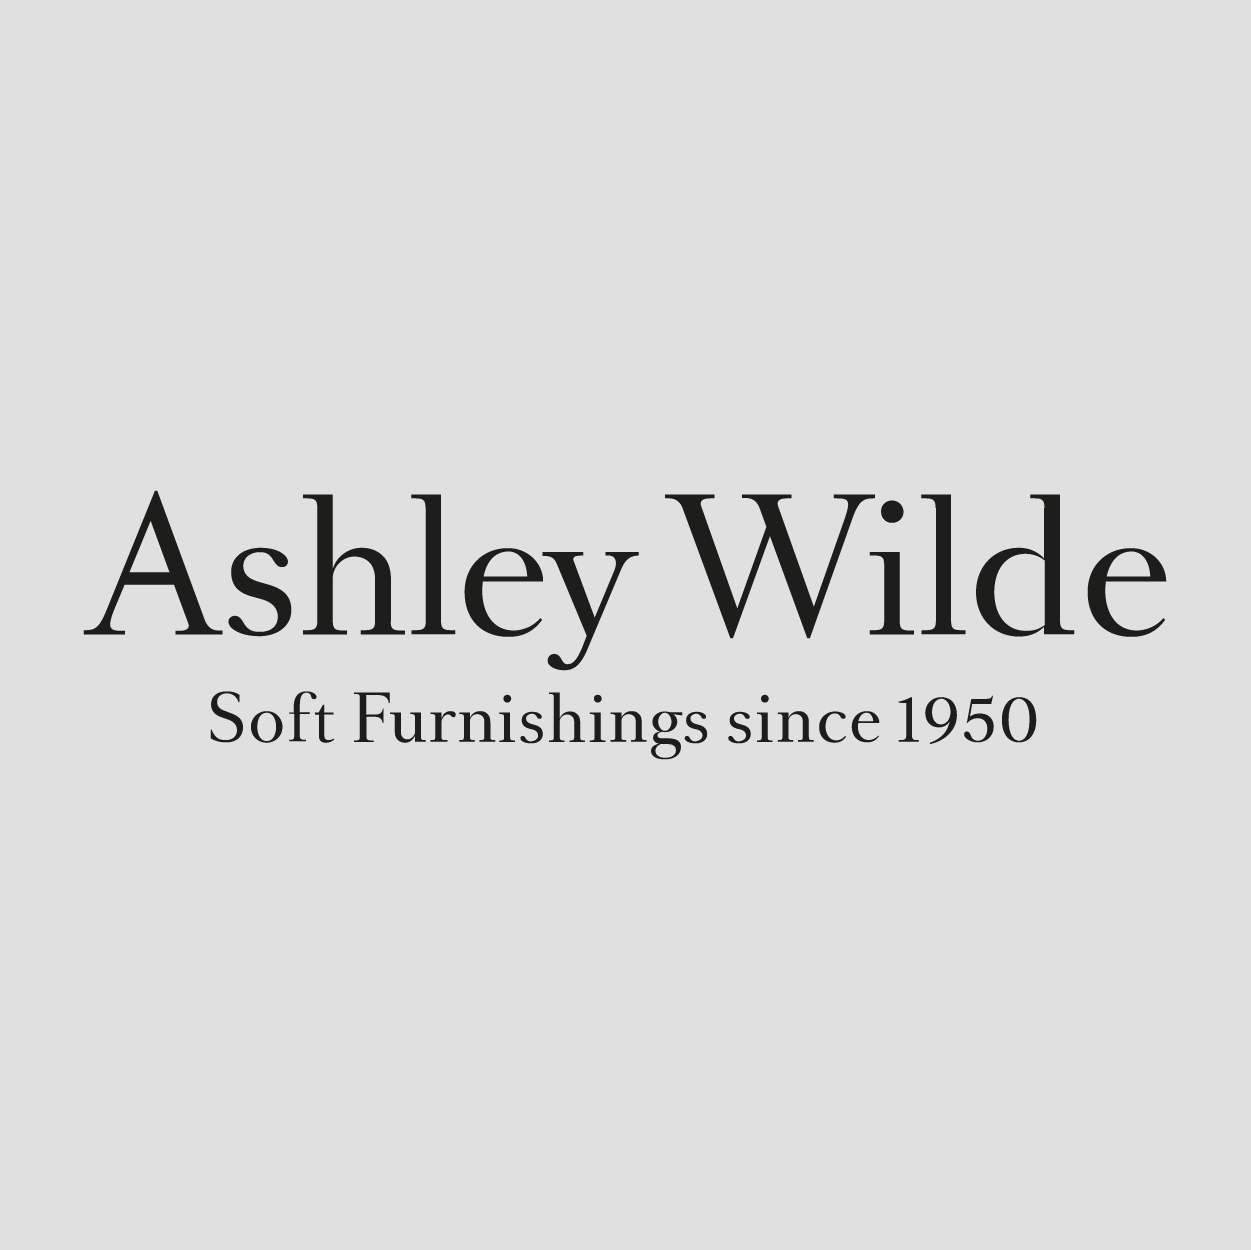 https://carpetandfabricsdirect.co.uk/wp-content/uploads/2019/08/ASHLEY-WILDE.jpg